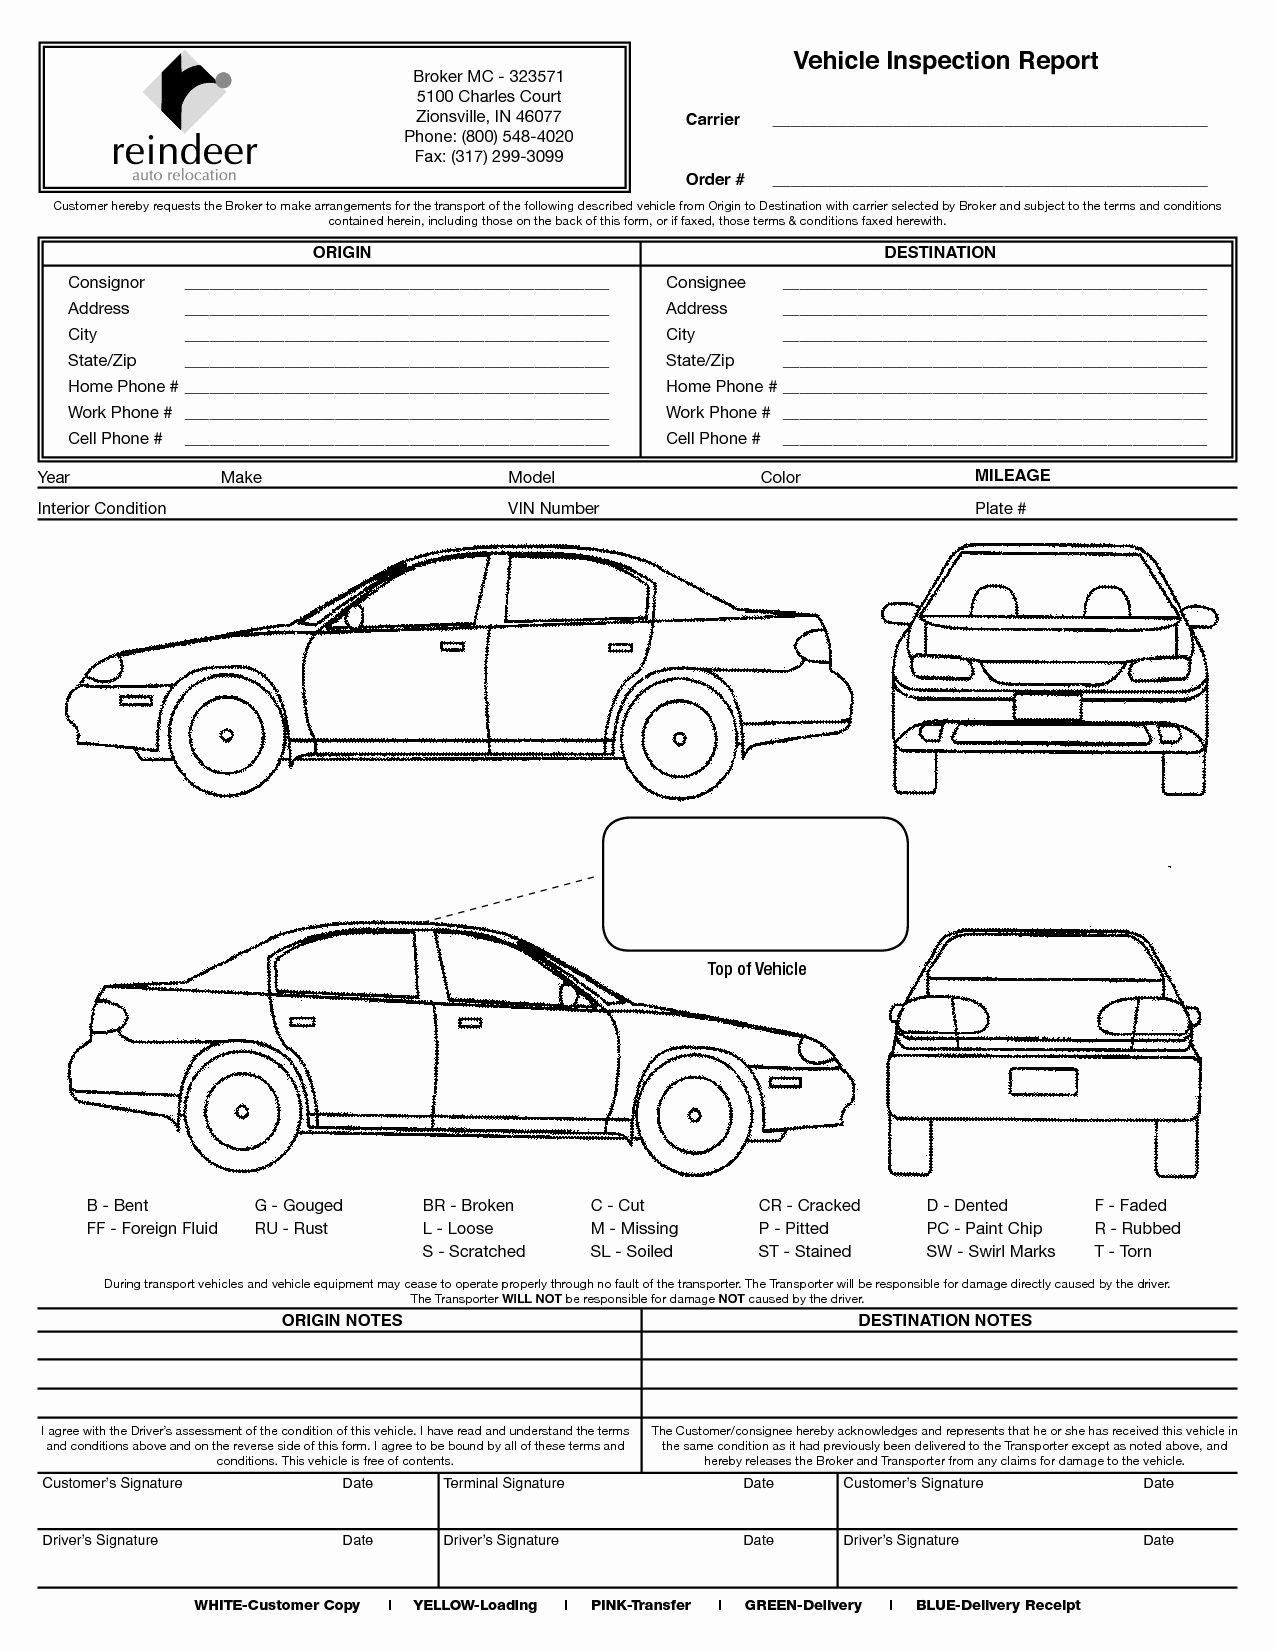 Free Printable Vehicle Condition Report Template Unique Free Bill Of Lading Form Auto Transport Pdf Vehicle Inspection Free Cars Inspection Checklist